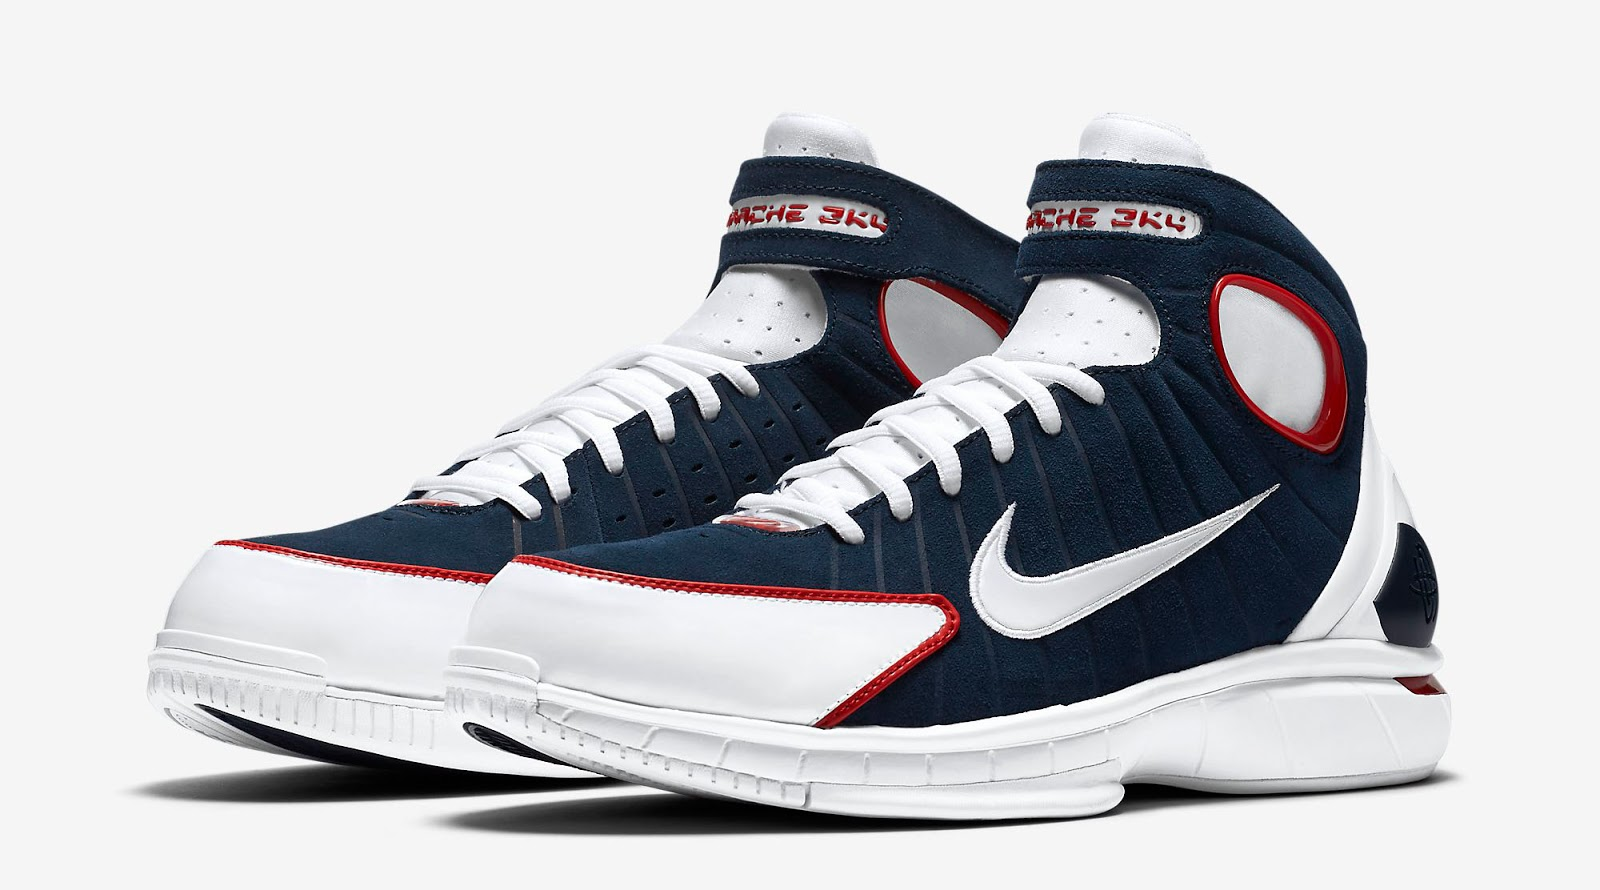 19bde98cb04a Nike Air Zoom Huarache 2K4 Midnight Navy White-University Red Release  Reminder